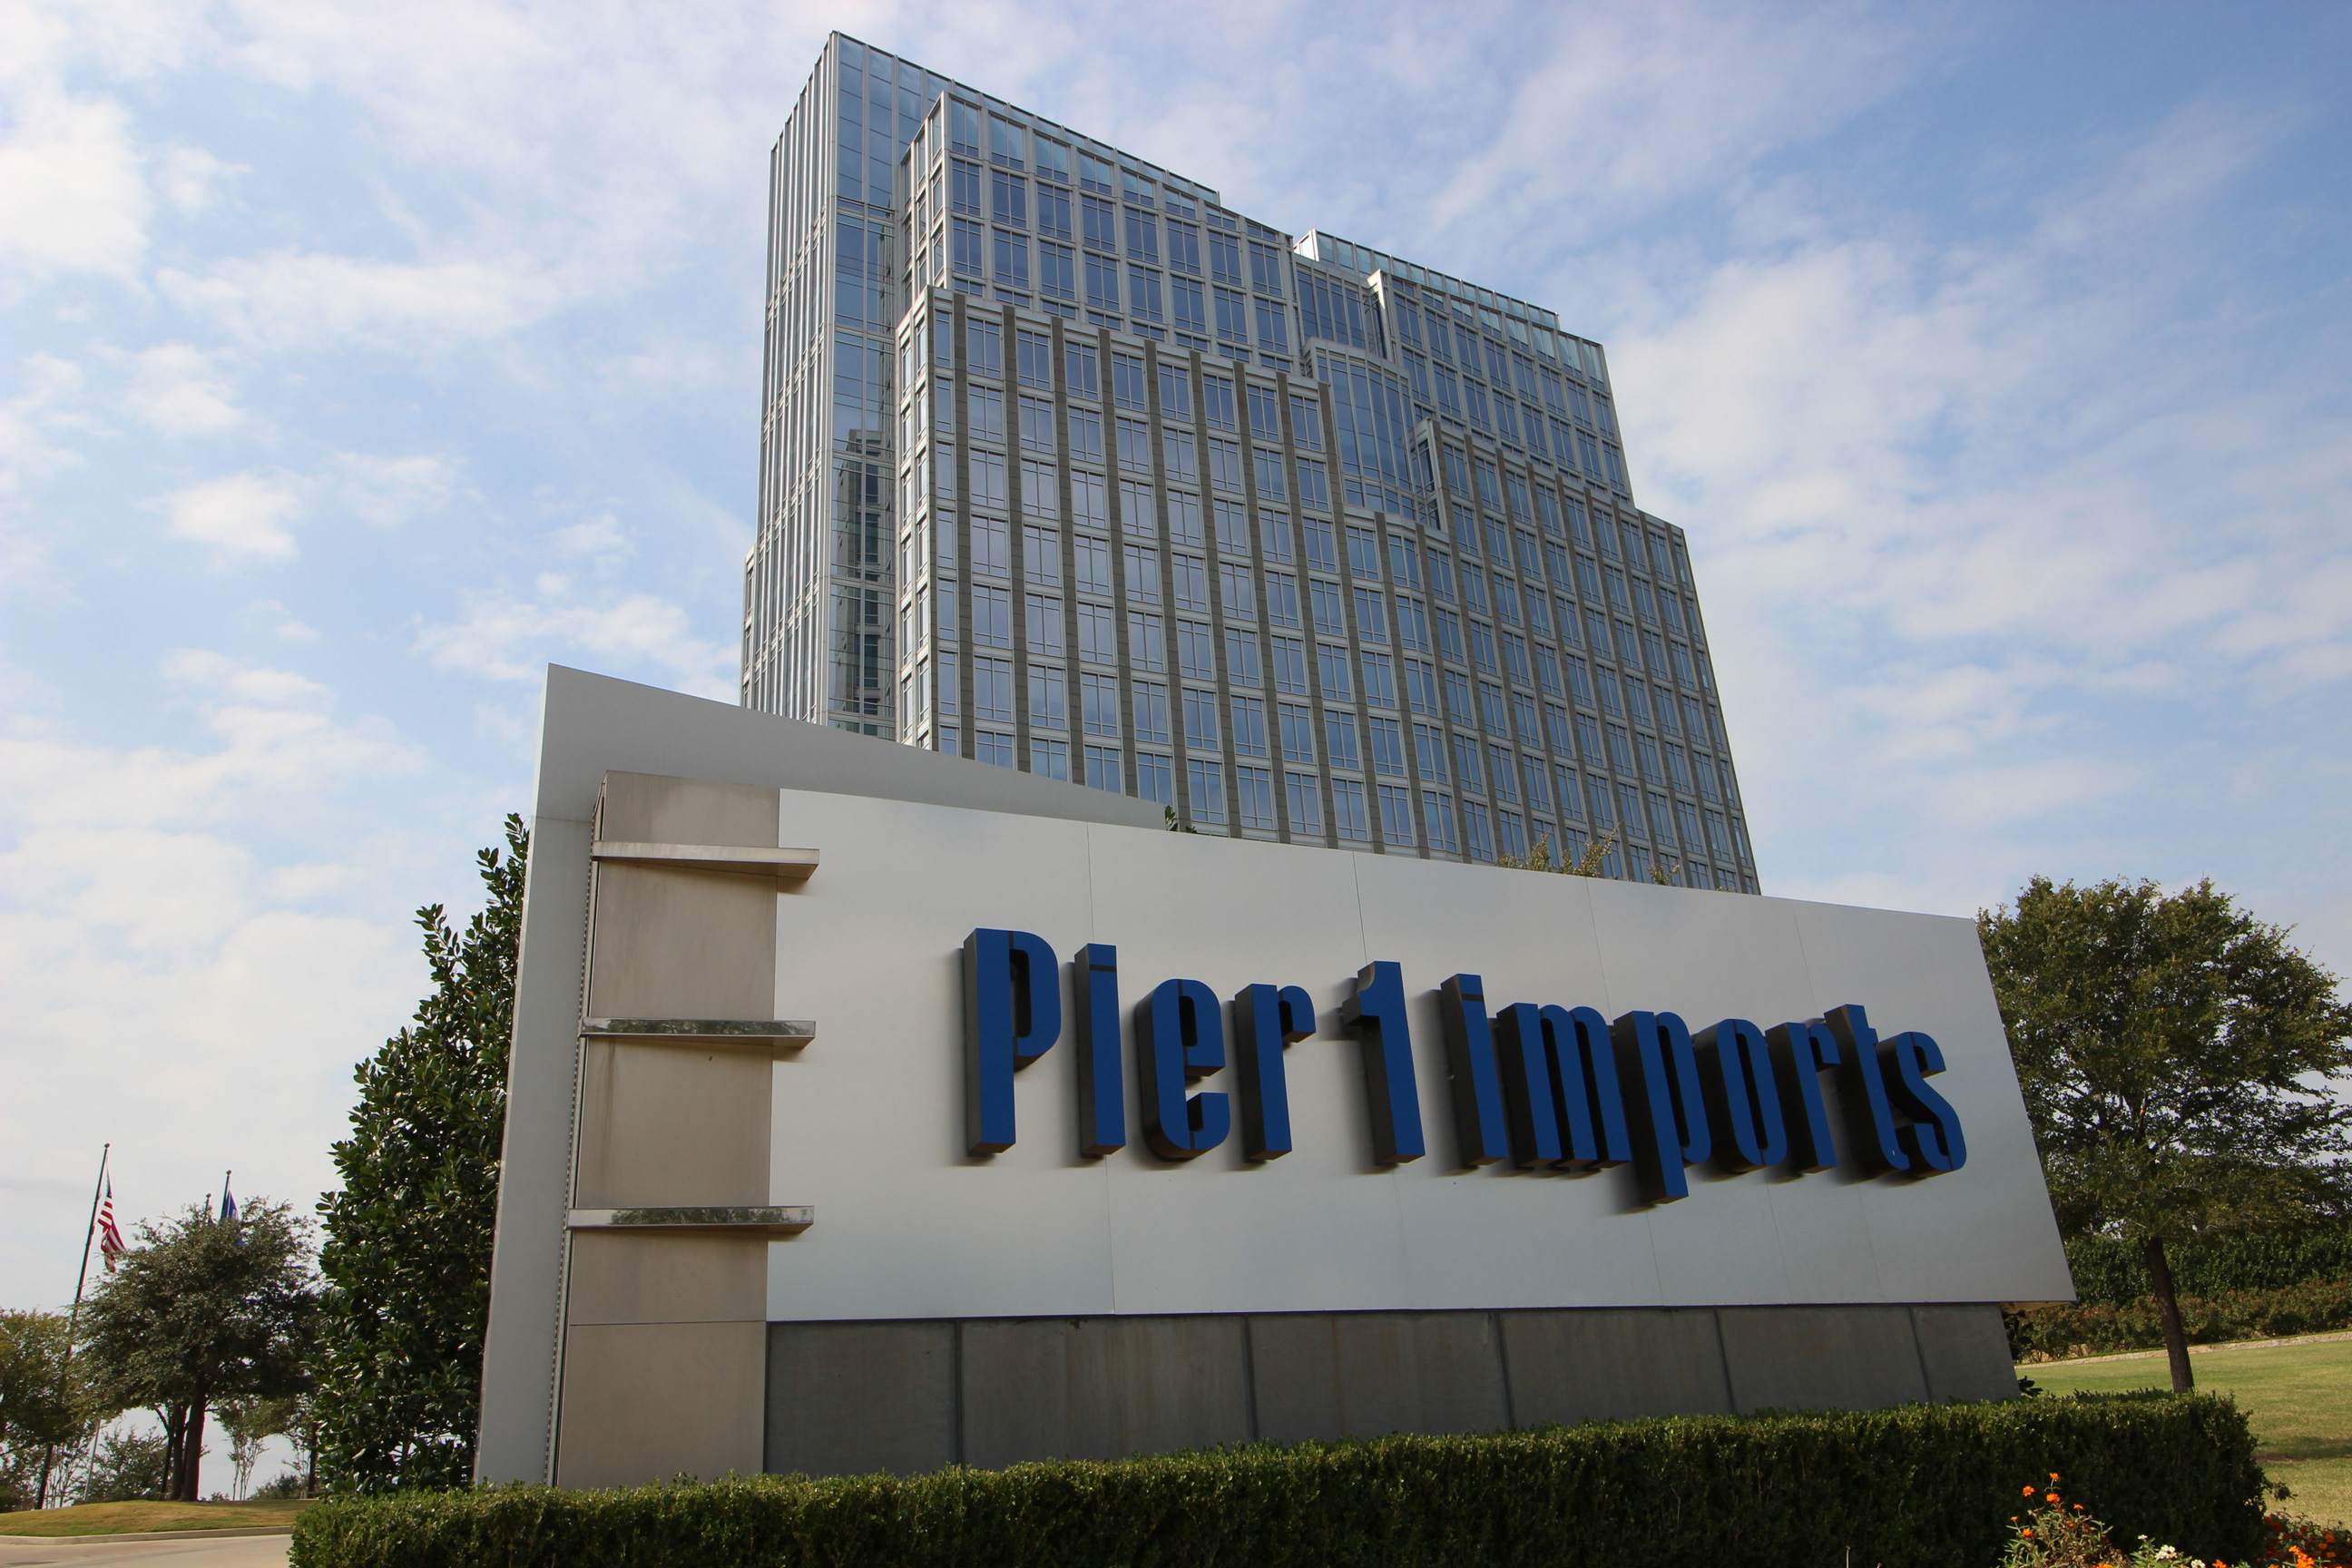 Pier 1 Corporate Headquarters